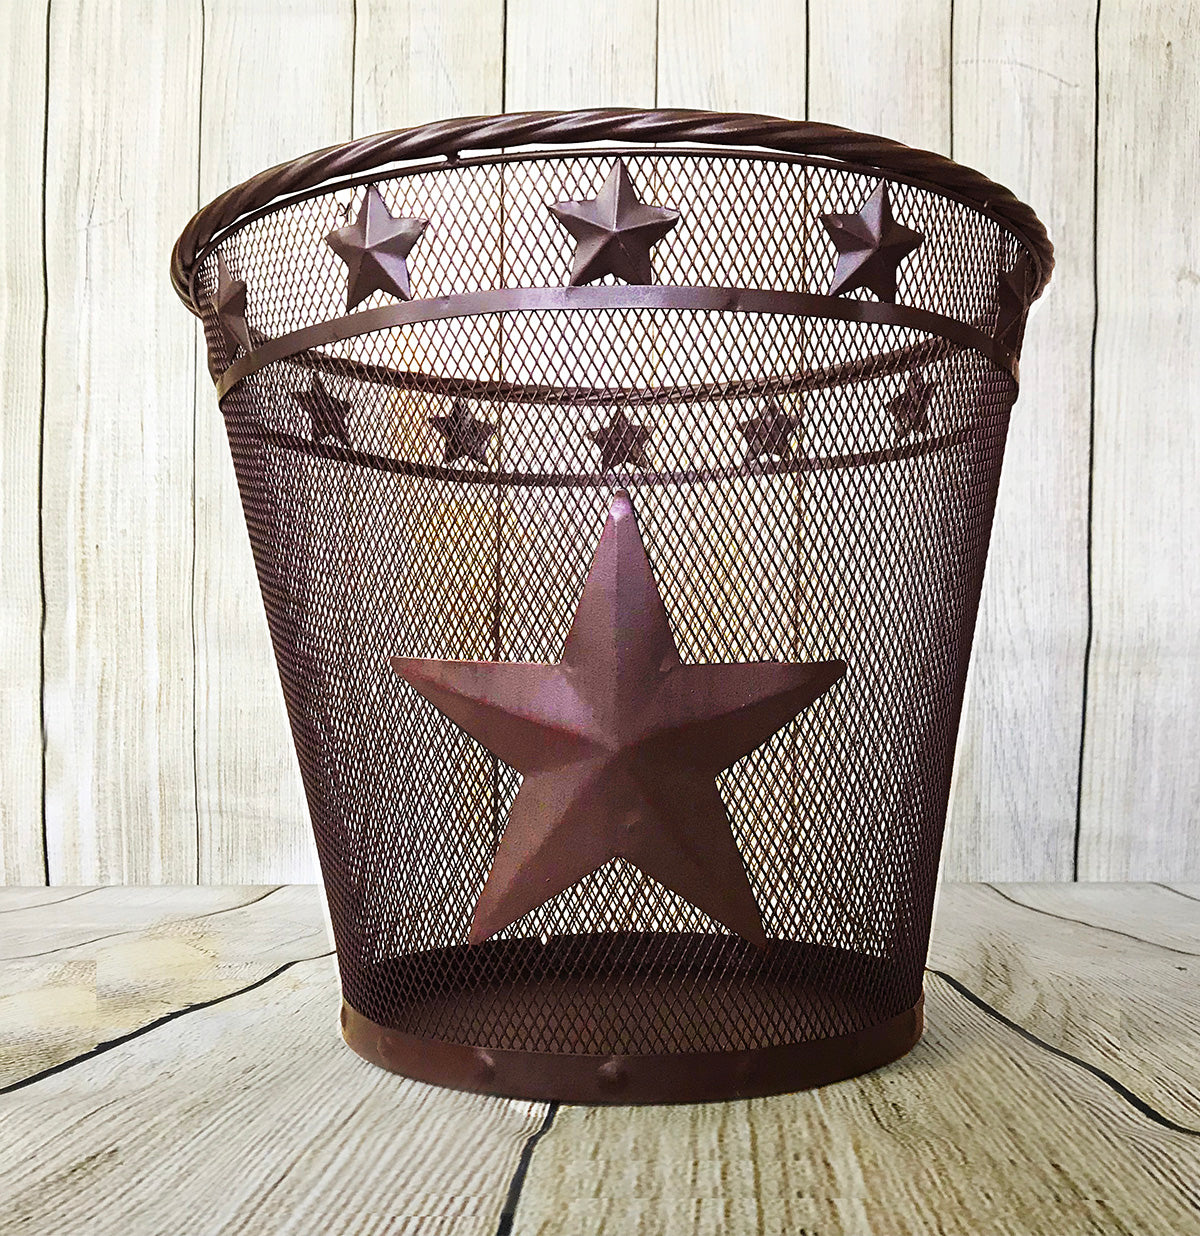 Metal 3D Star Mesh Design Waste Basket